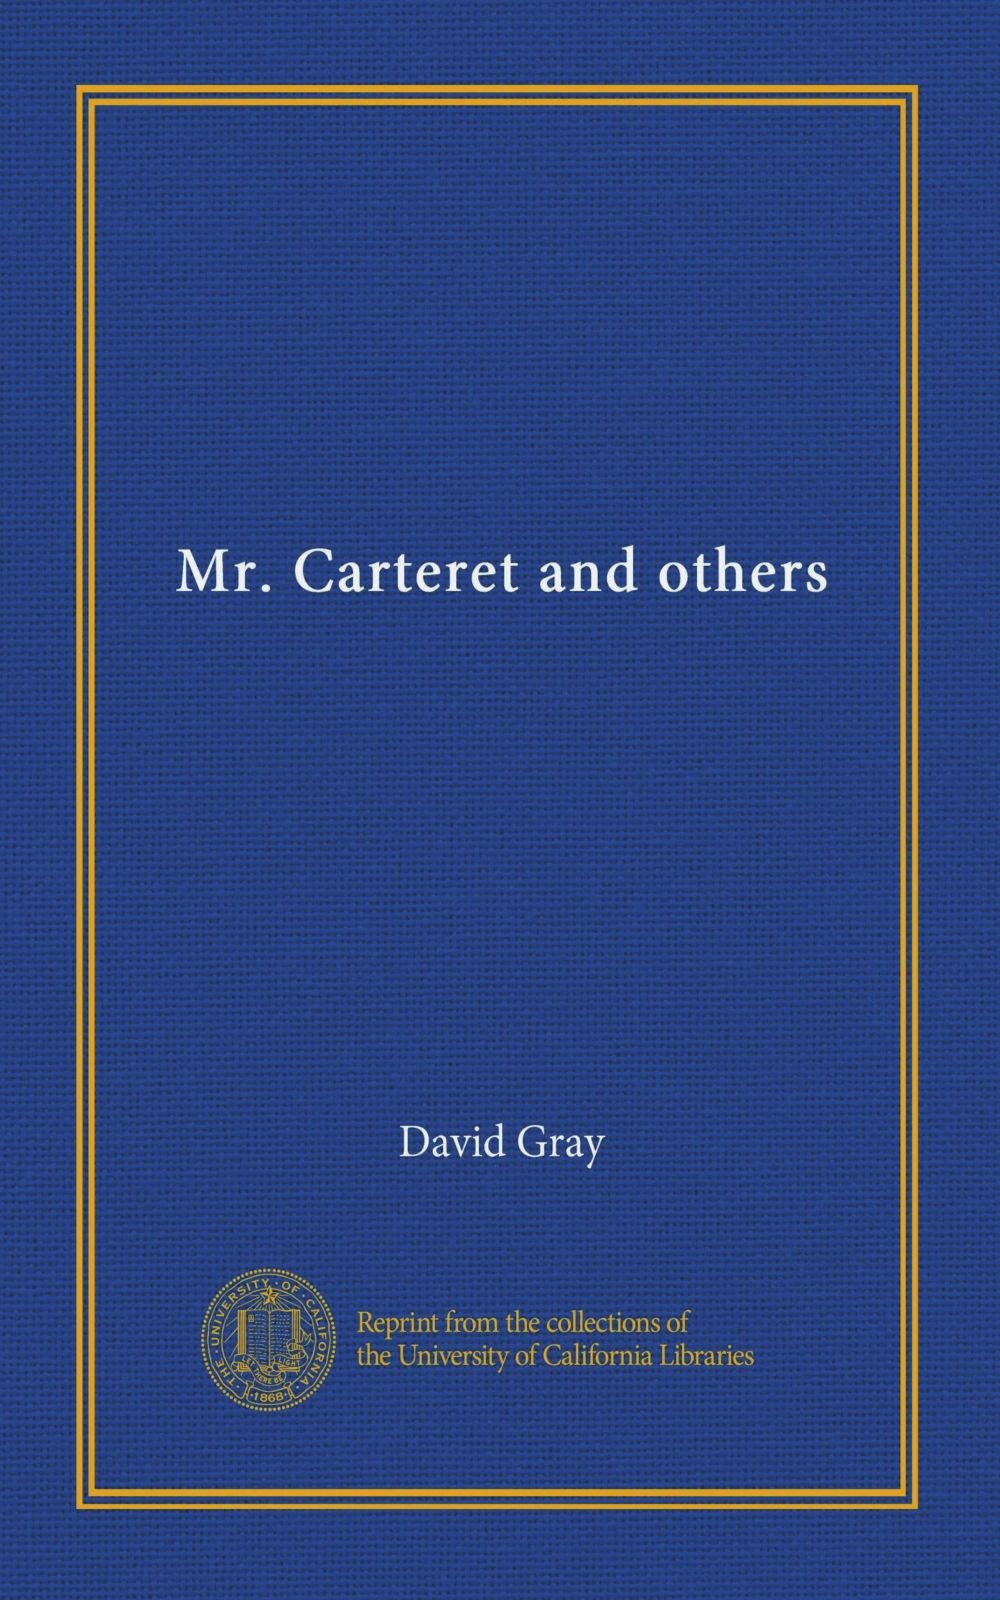 Read Online Mr. Carteret and others Text fb2 book